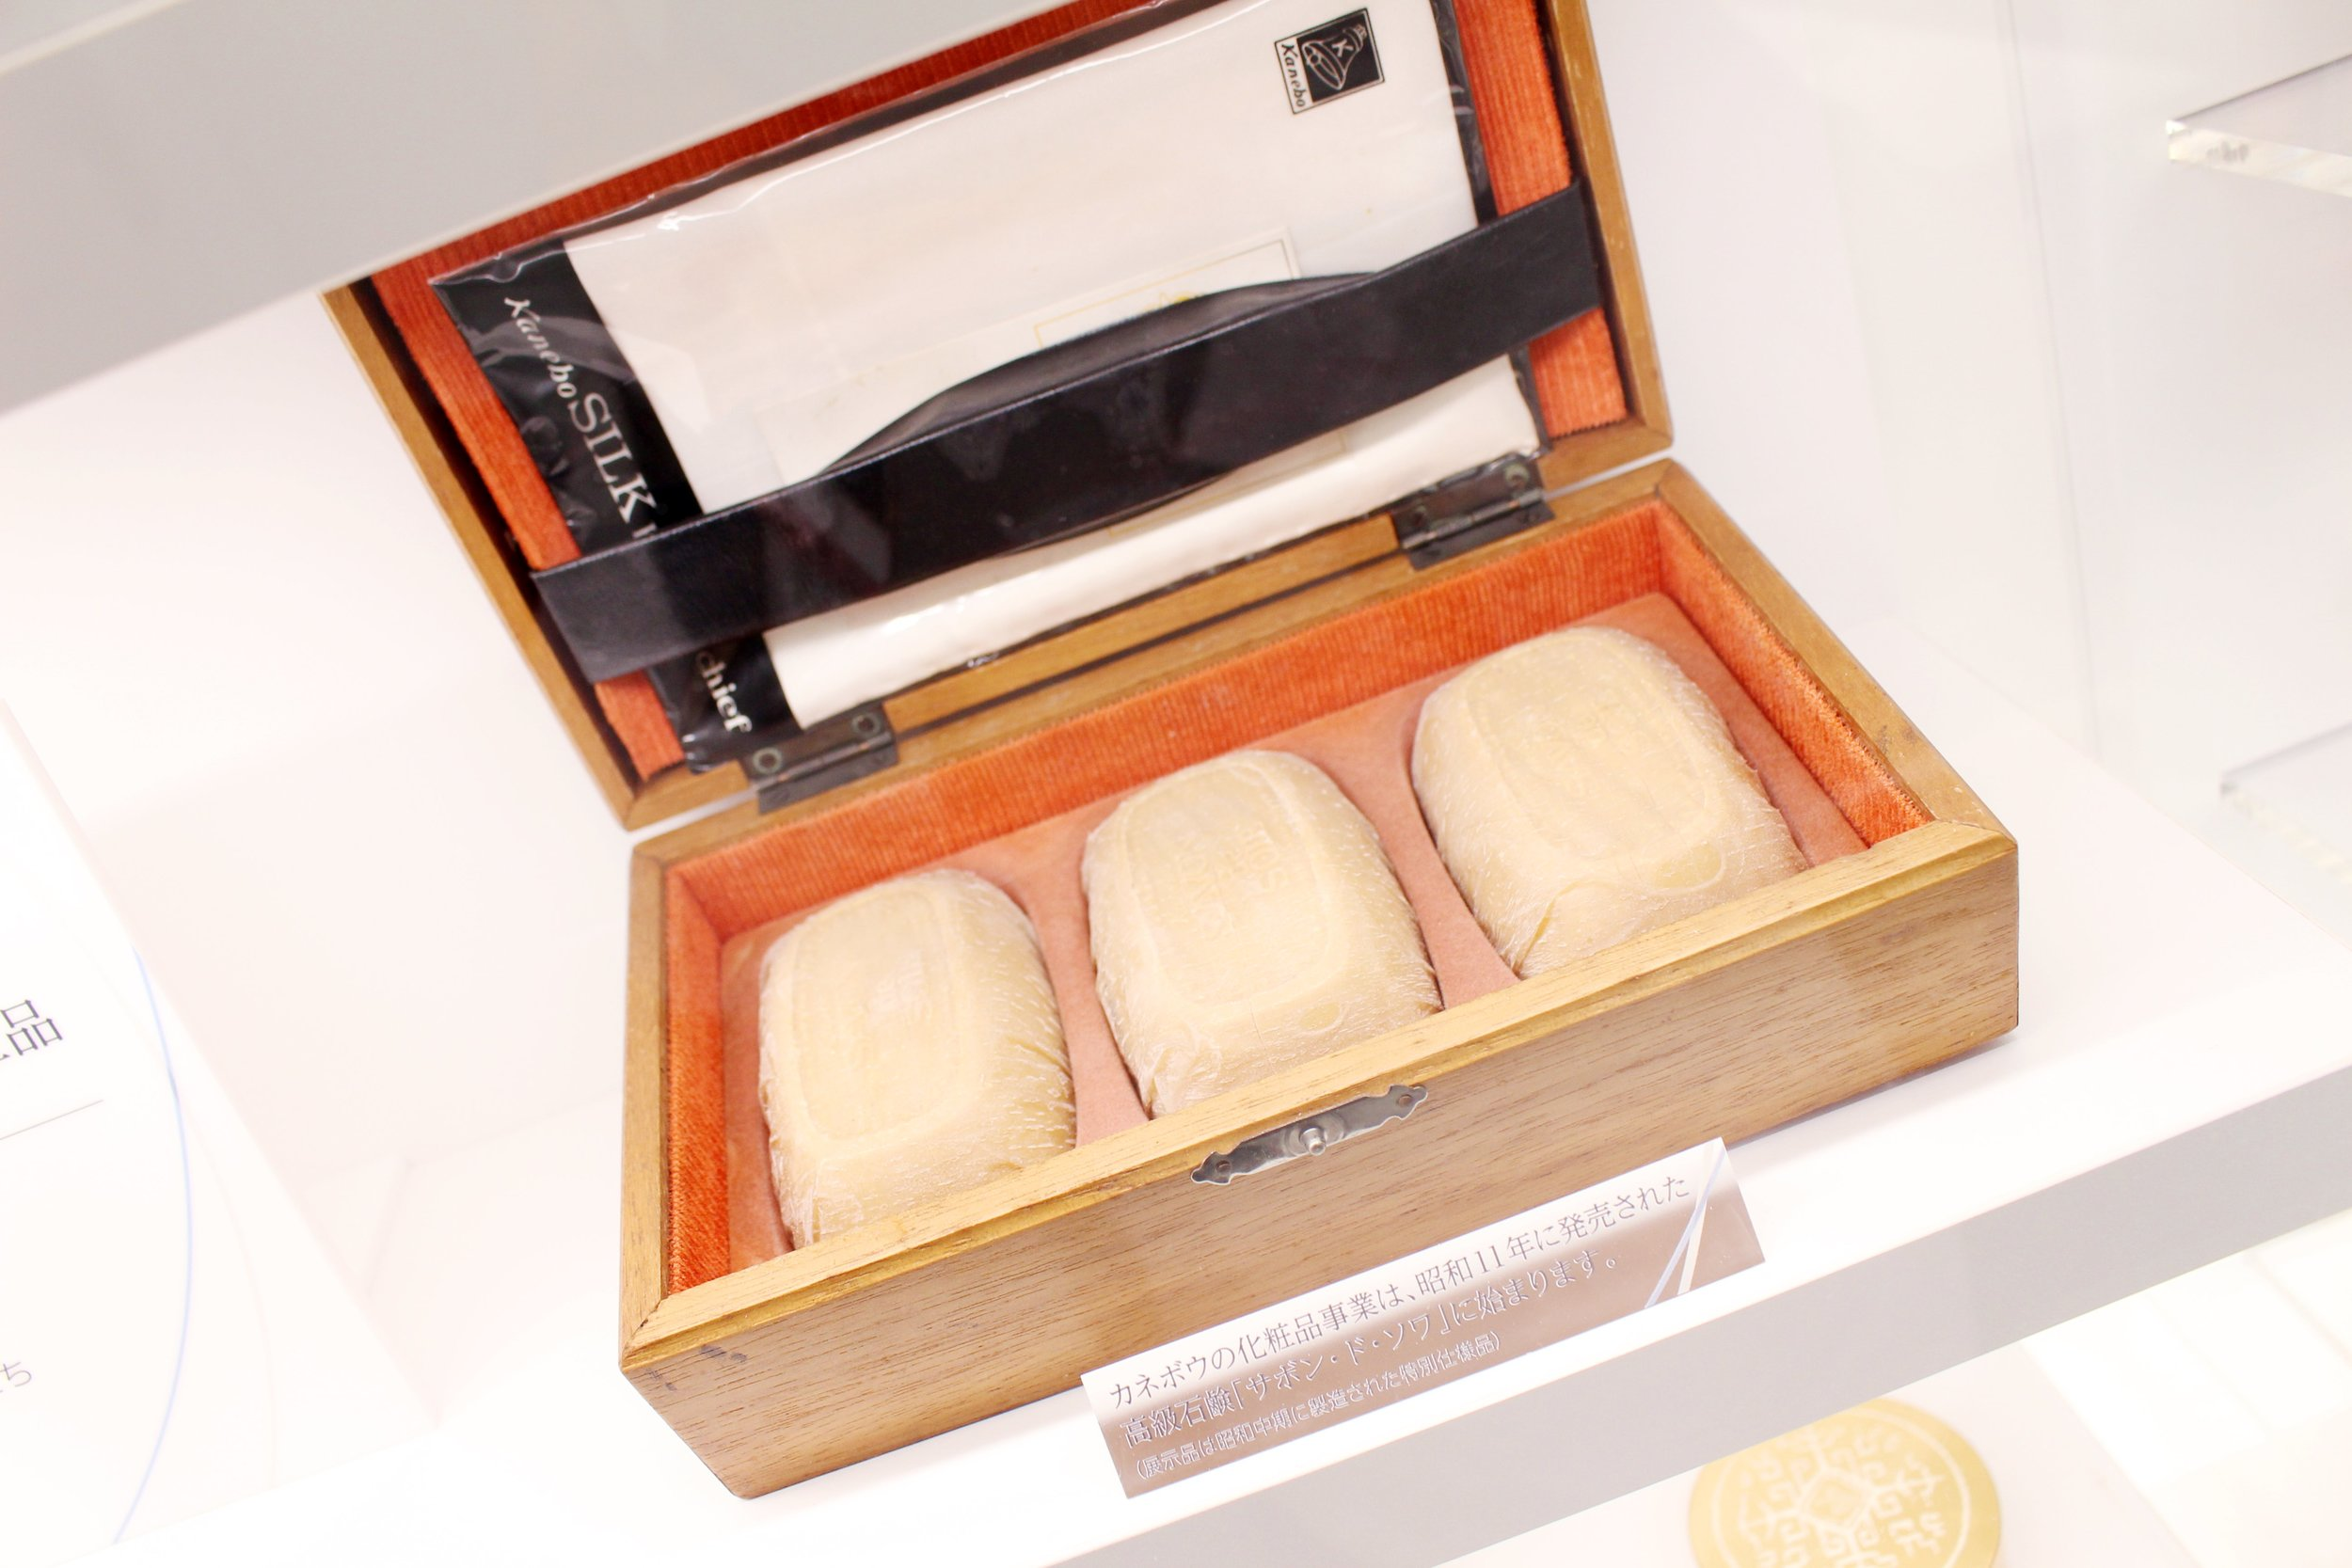 The first ever Kanebo beauty product, the Savon de Soie